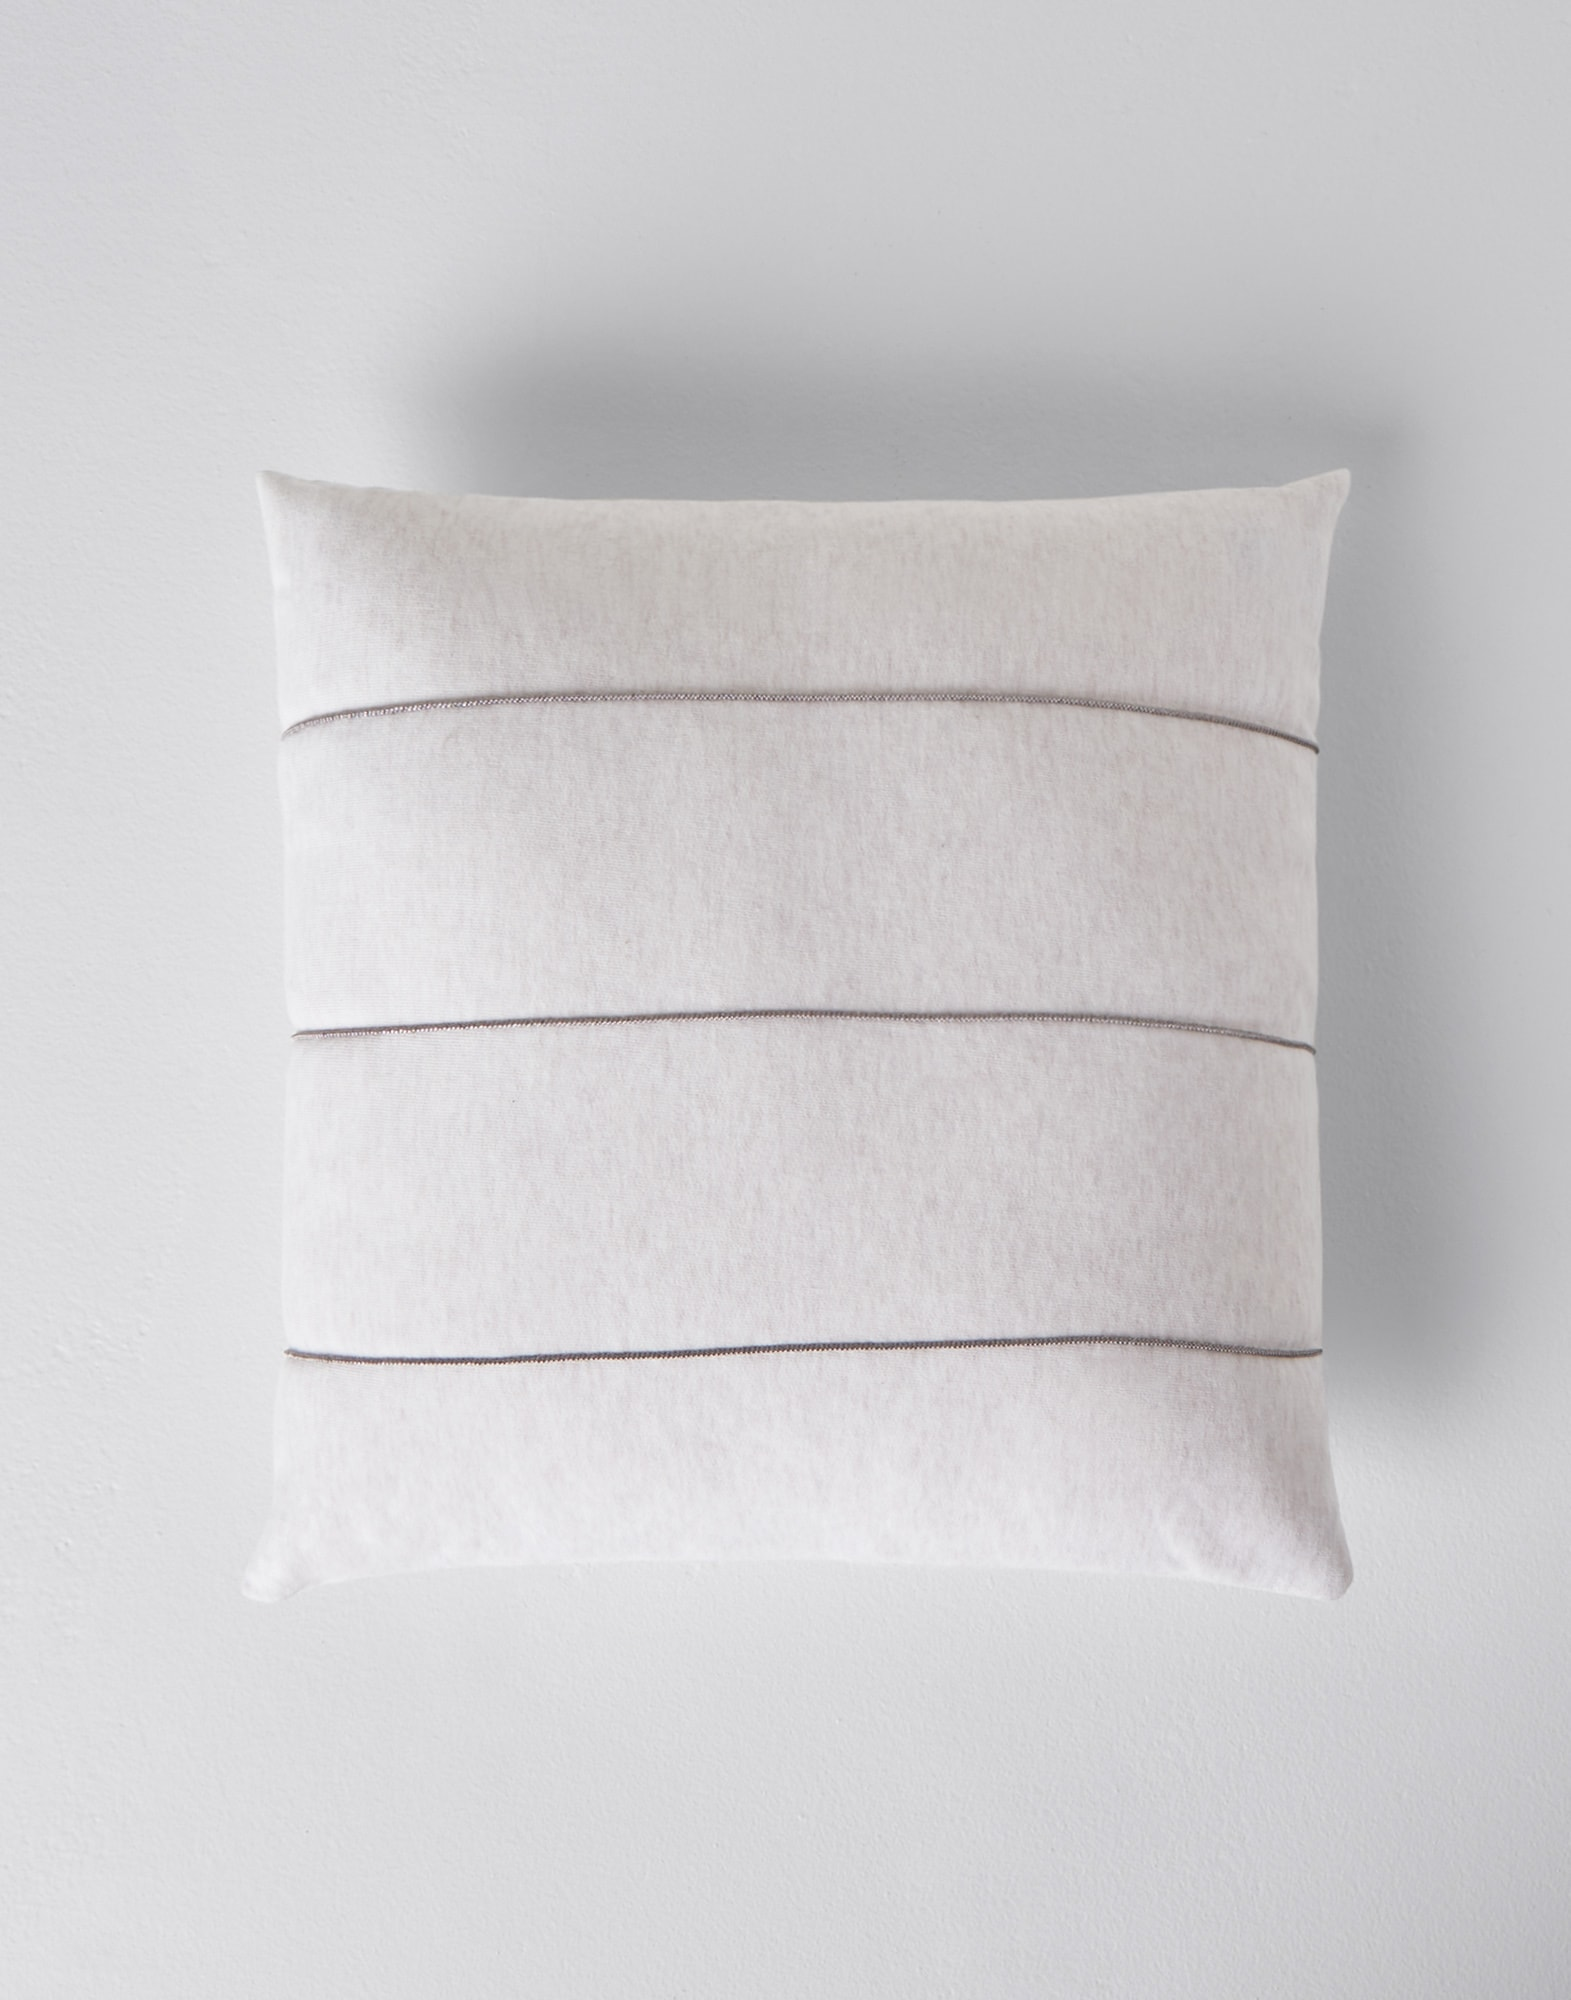 Fabric Cushions Oat Lifestyle 1 - Brunello Cucinelli